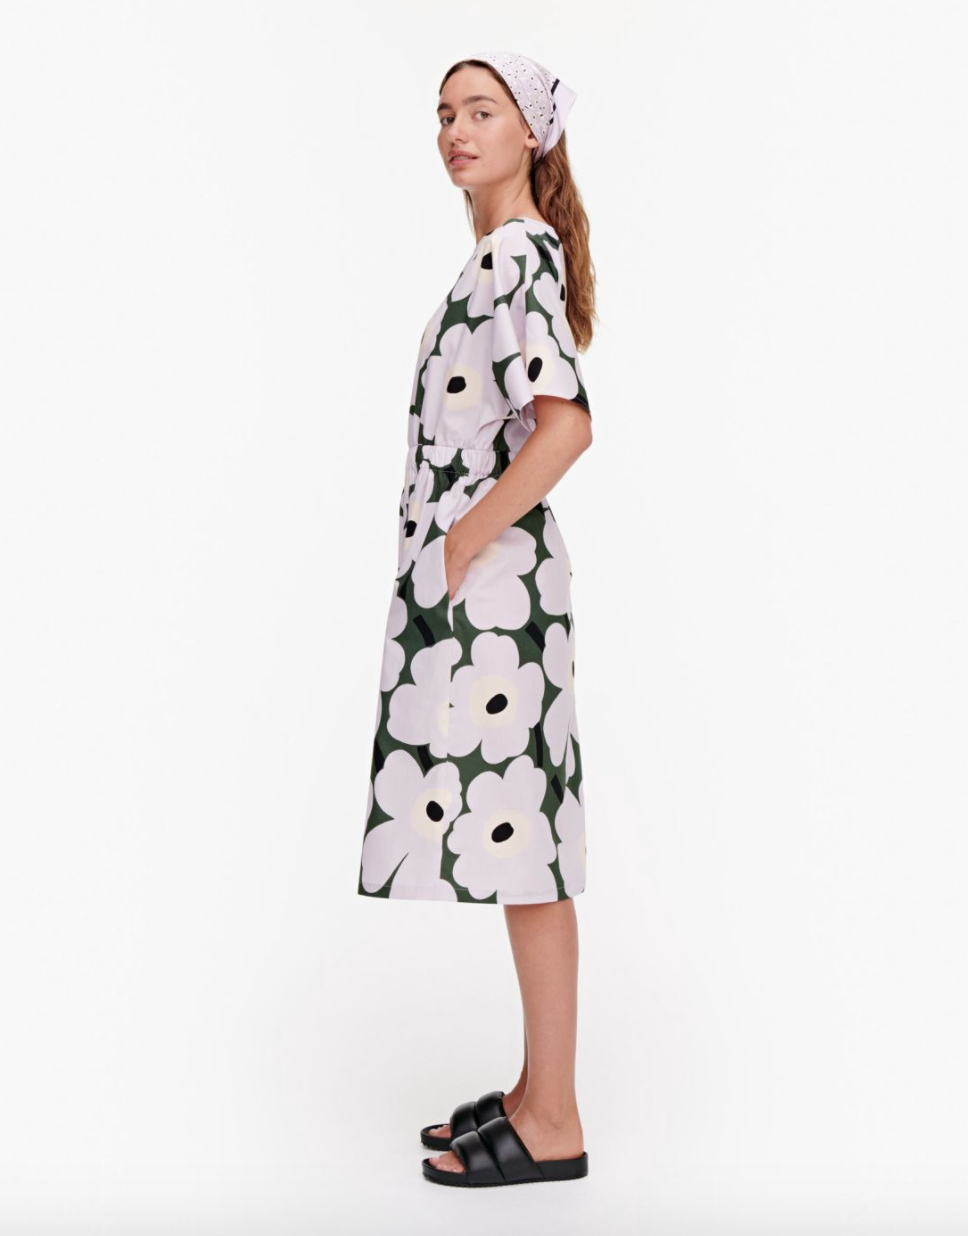 A woman wears a loose-fitting dress printed with green and purple large modern flowers.